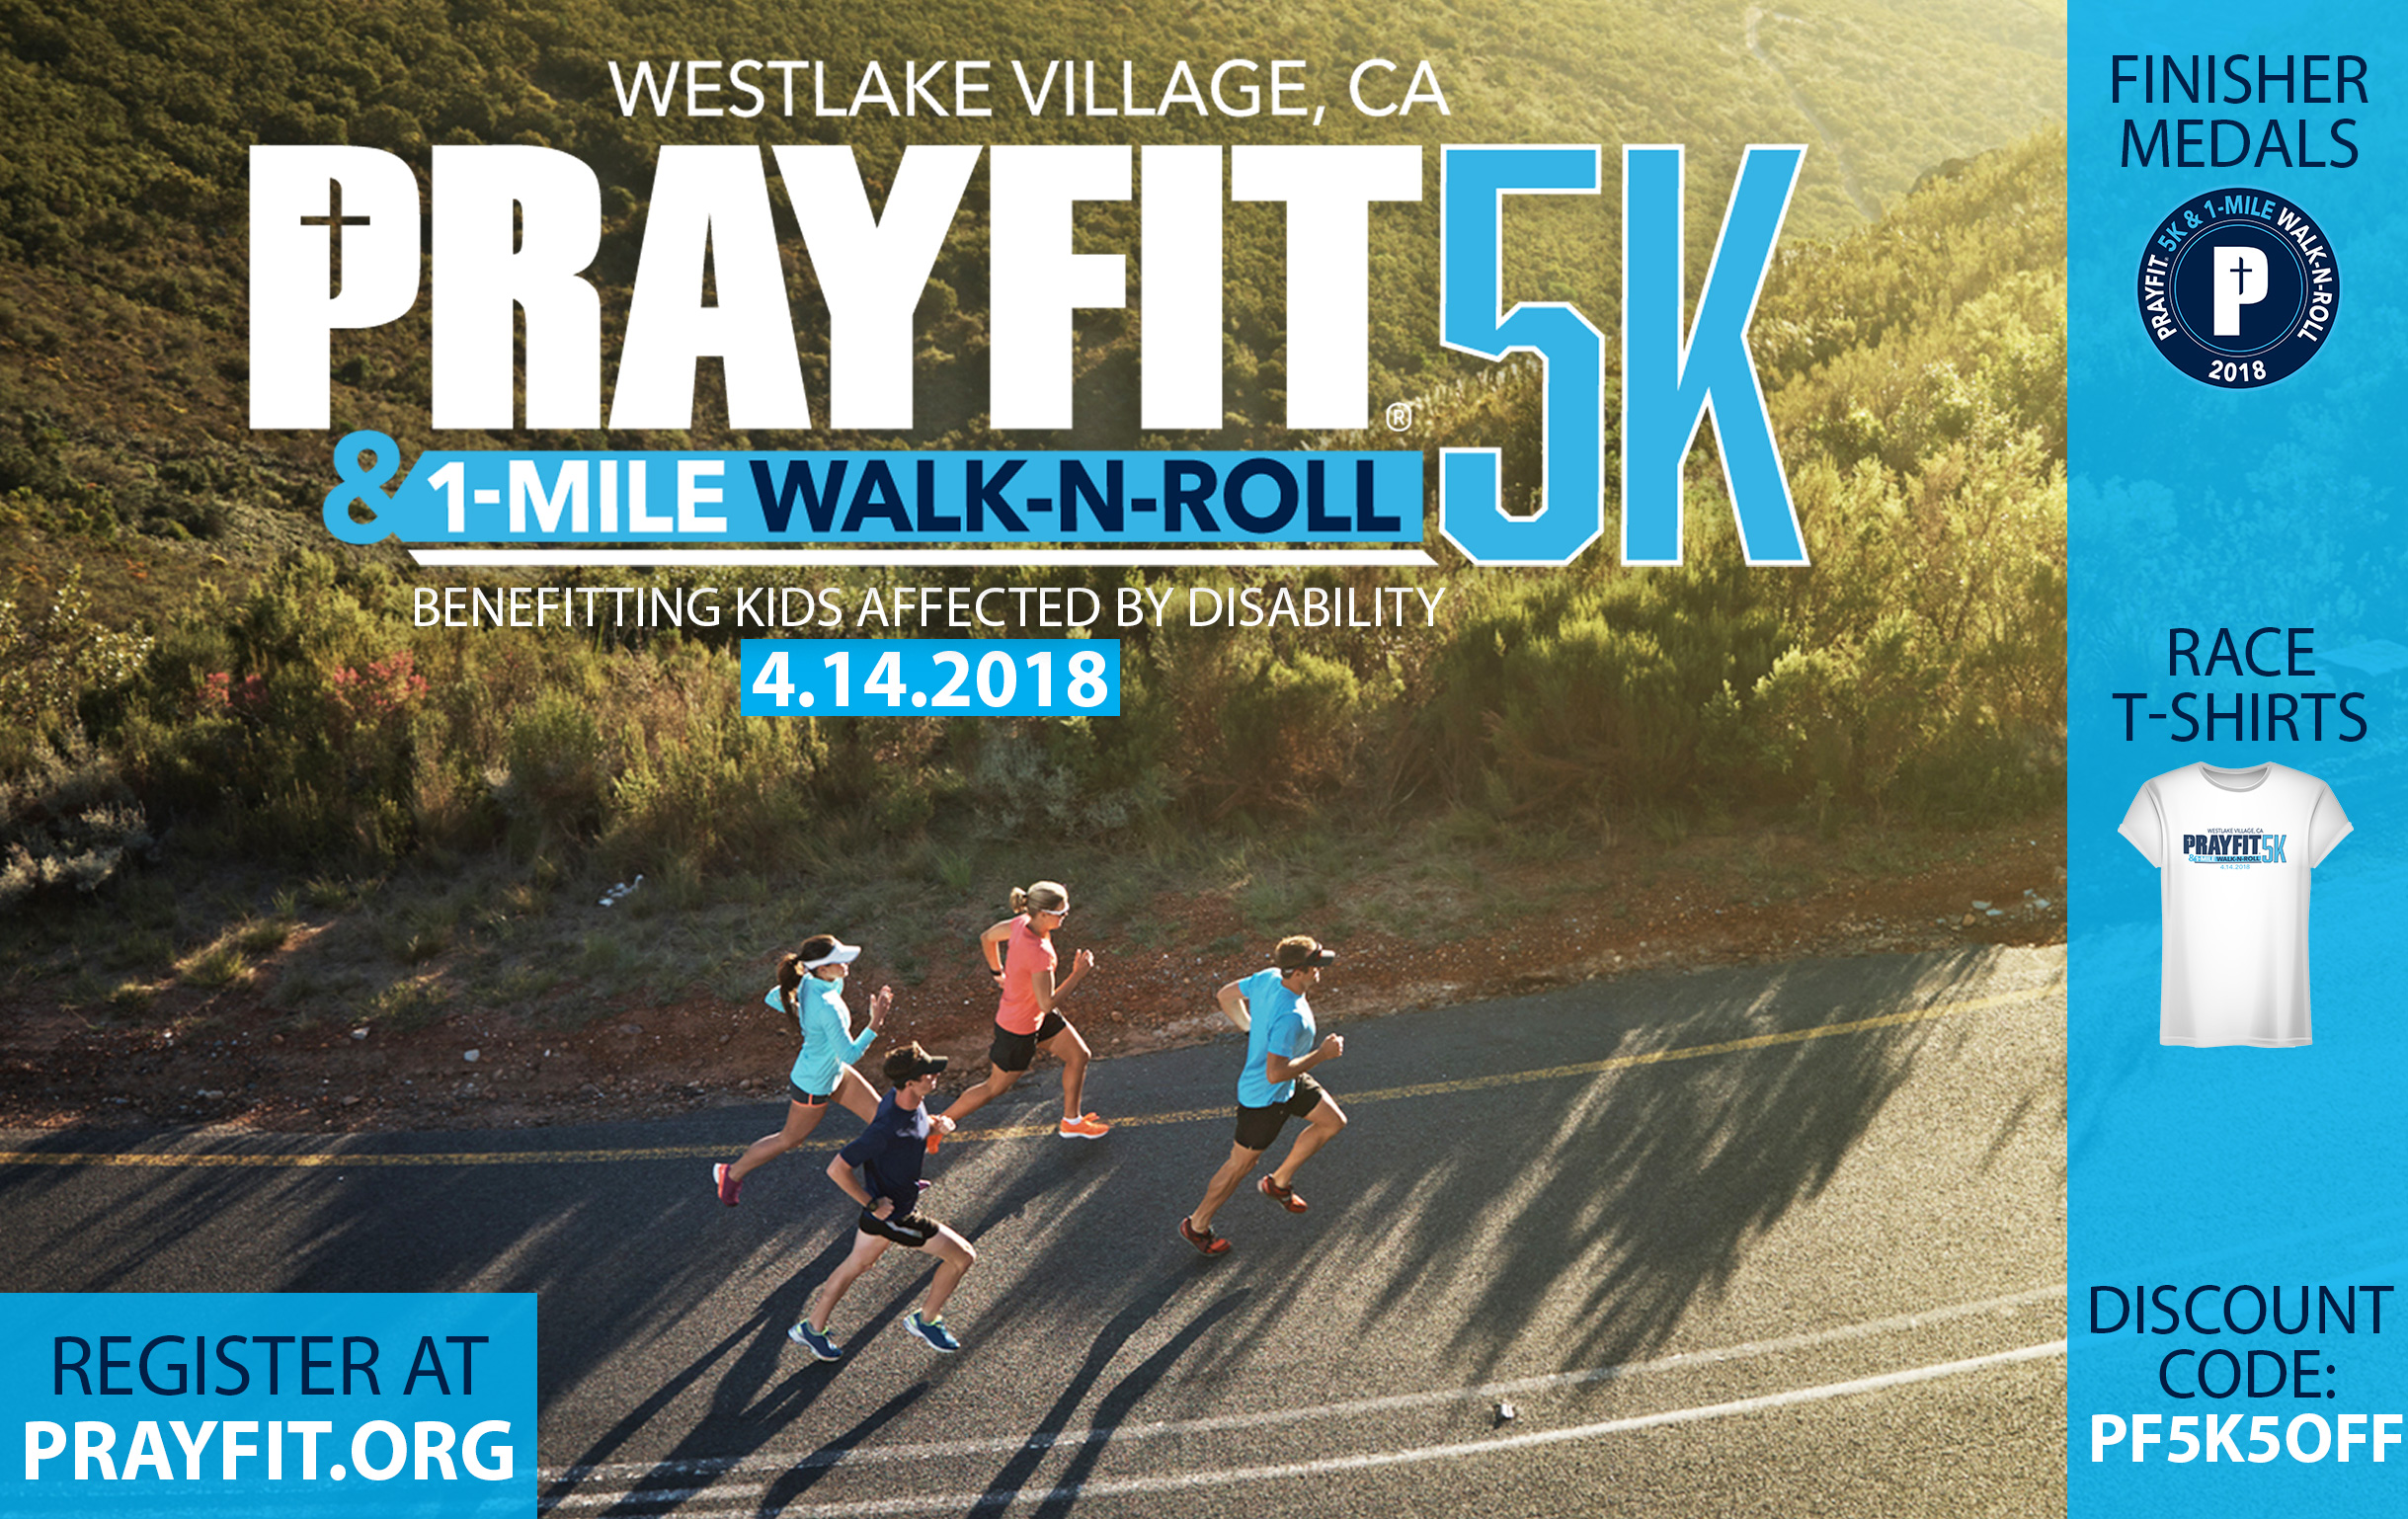 - Click below to reserve your t-shirt and medal and let's walk and run coast-to-coast for those who can't.